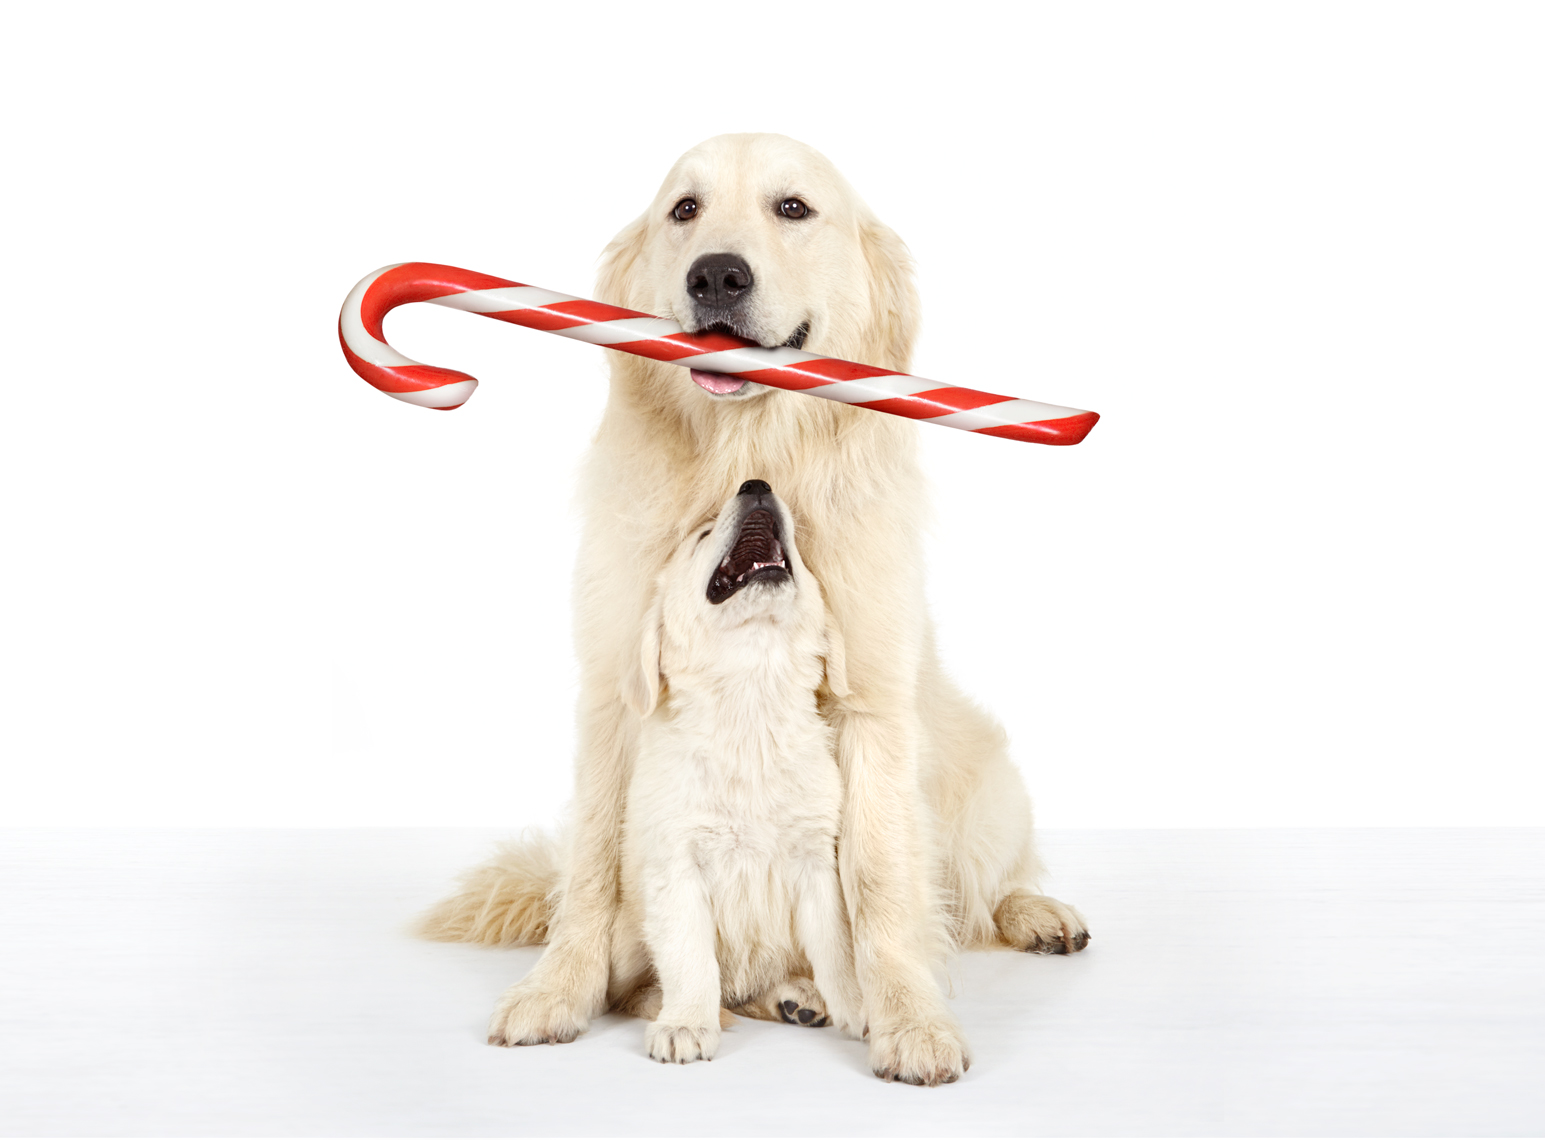 Golden Retriever with candy cane